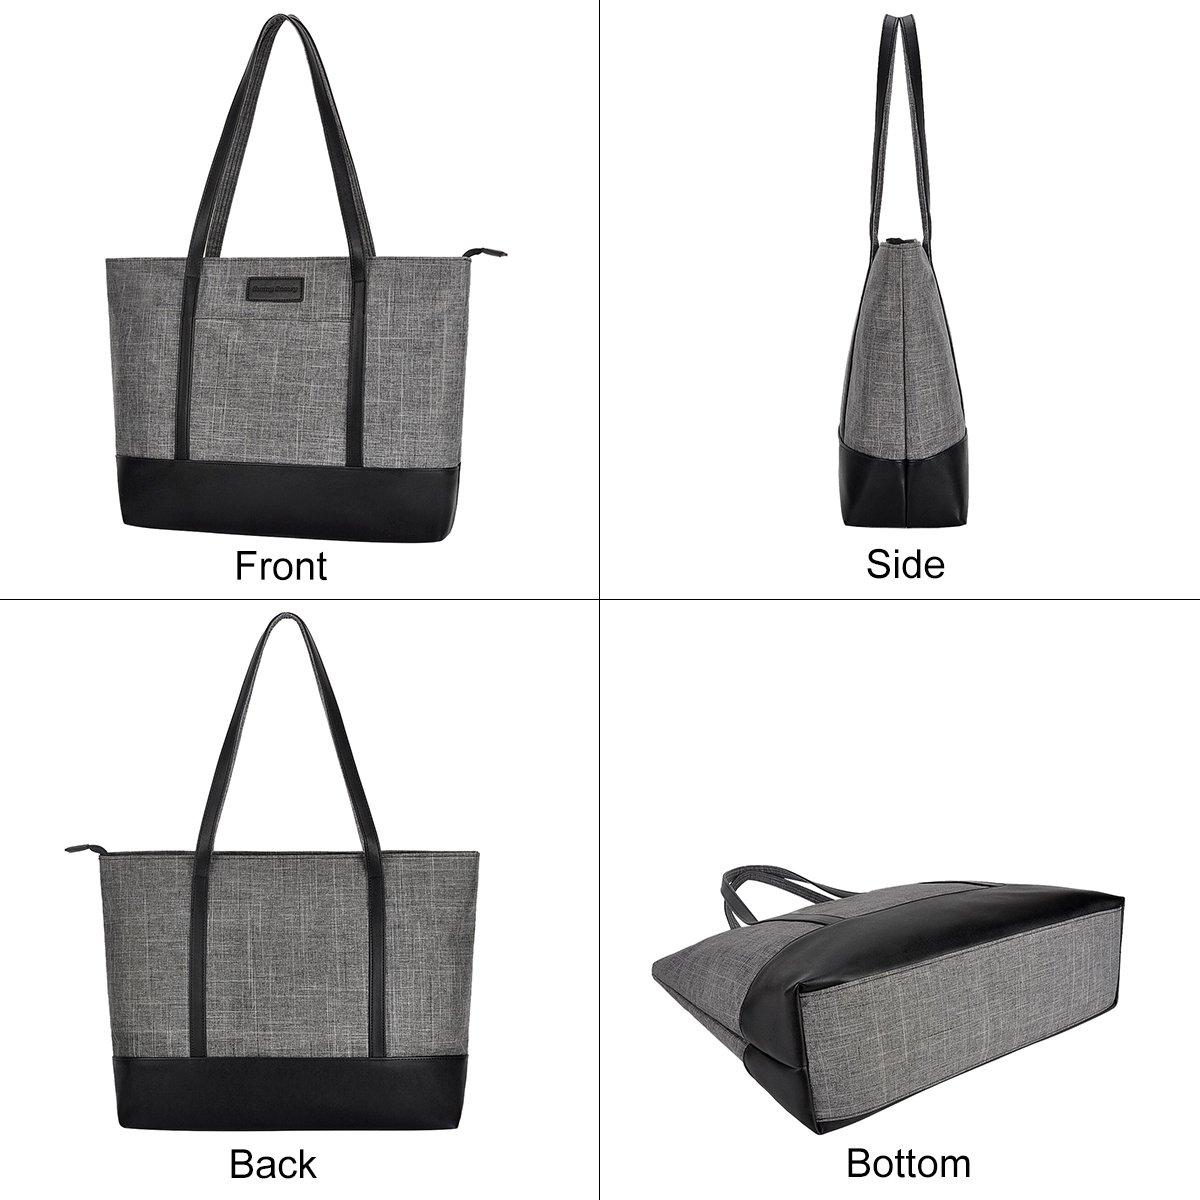 49f0d331e97a Amazon.com: Laptop Tote Bag,Fits 15.6 Inch Laptop,Womens Lightweight Water  Resistant Nylon Tote Bag Shoulder Bag (Gray): Shoes